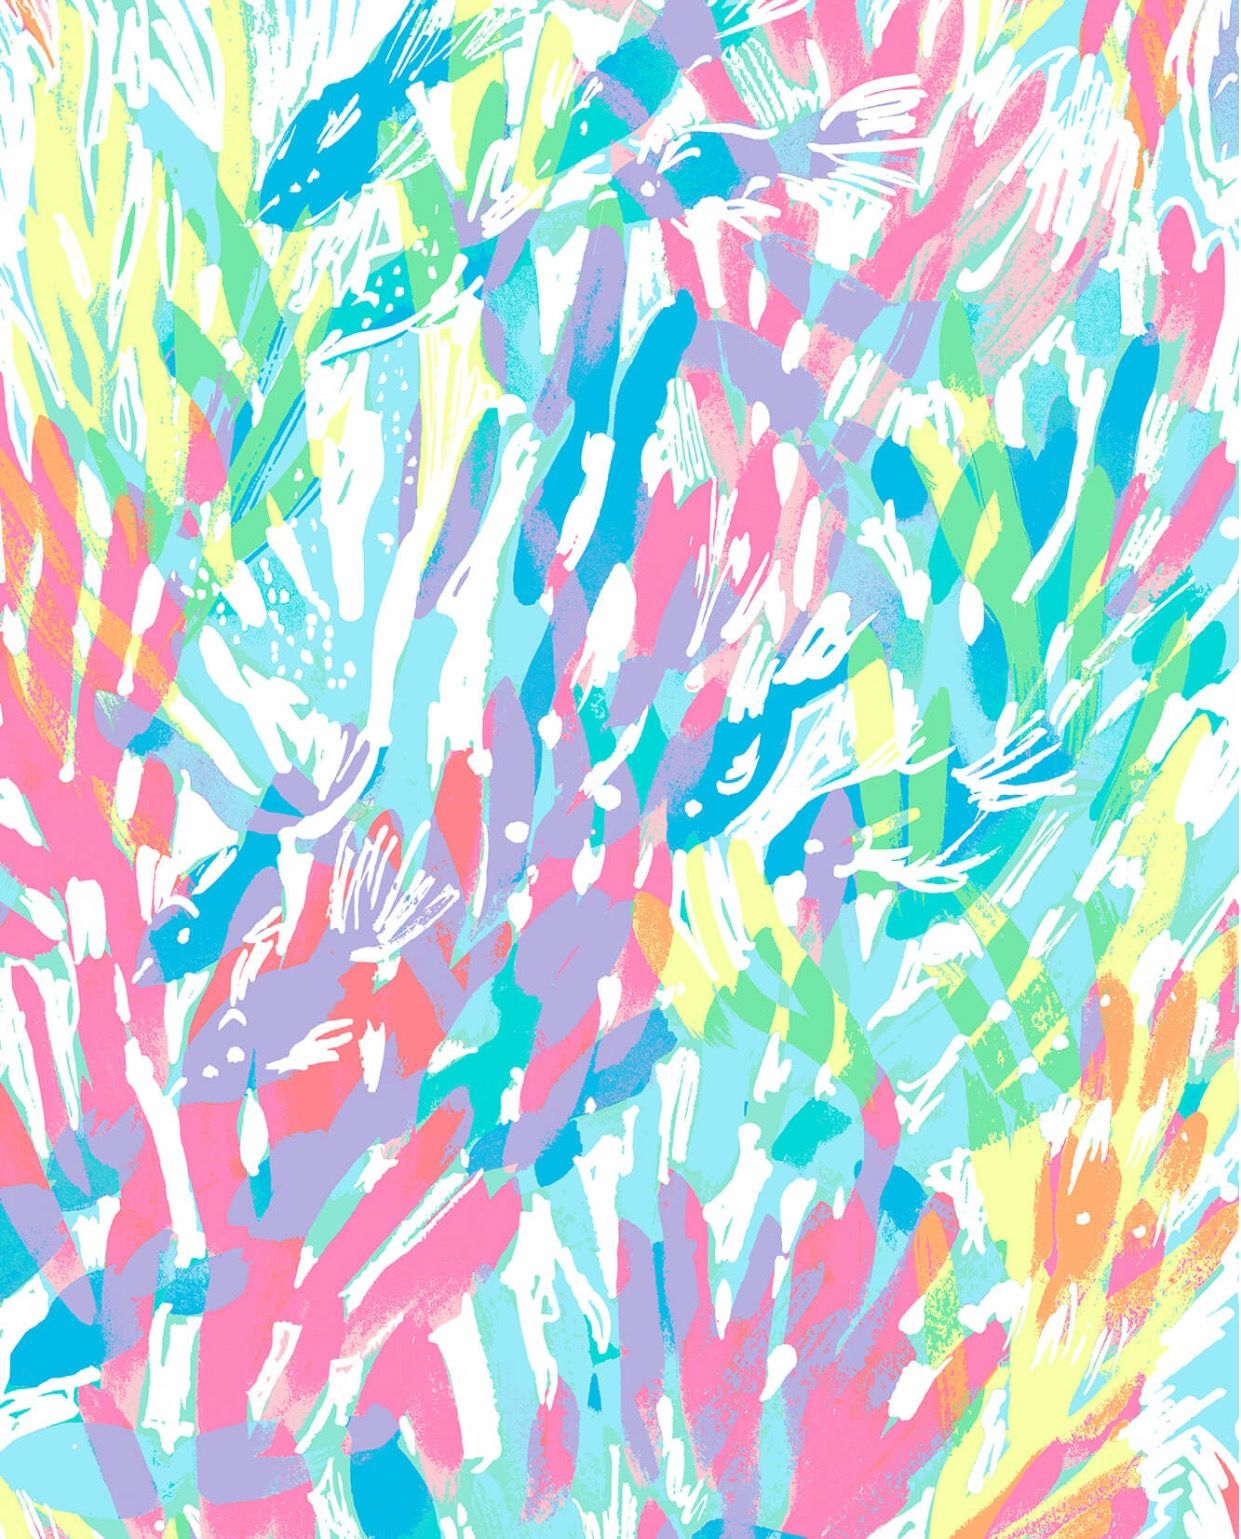 Lilly Pulitzer Patterns Sparkling Sands Lilly Pulitzer Patterns Pinterest Lilly